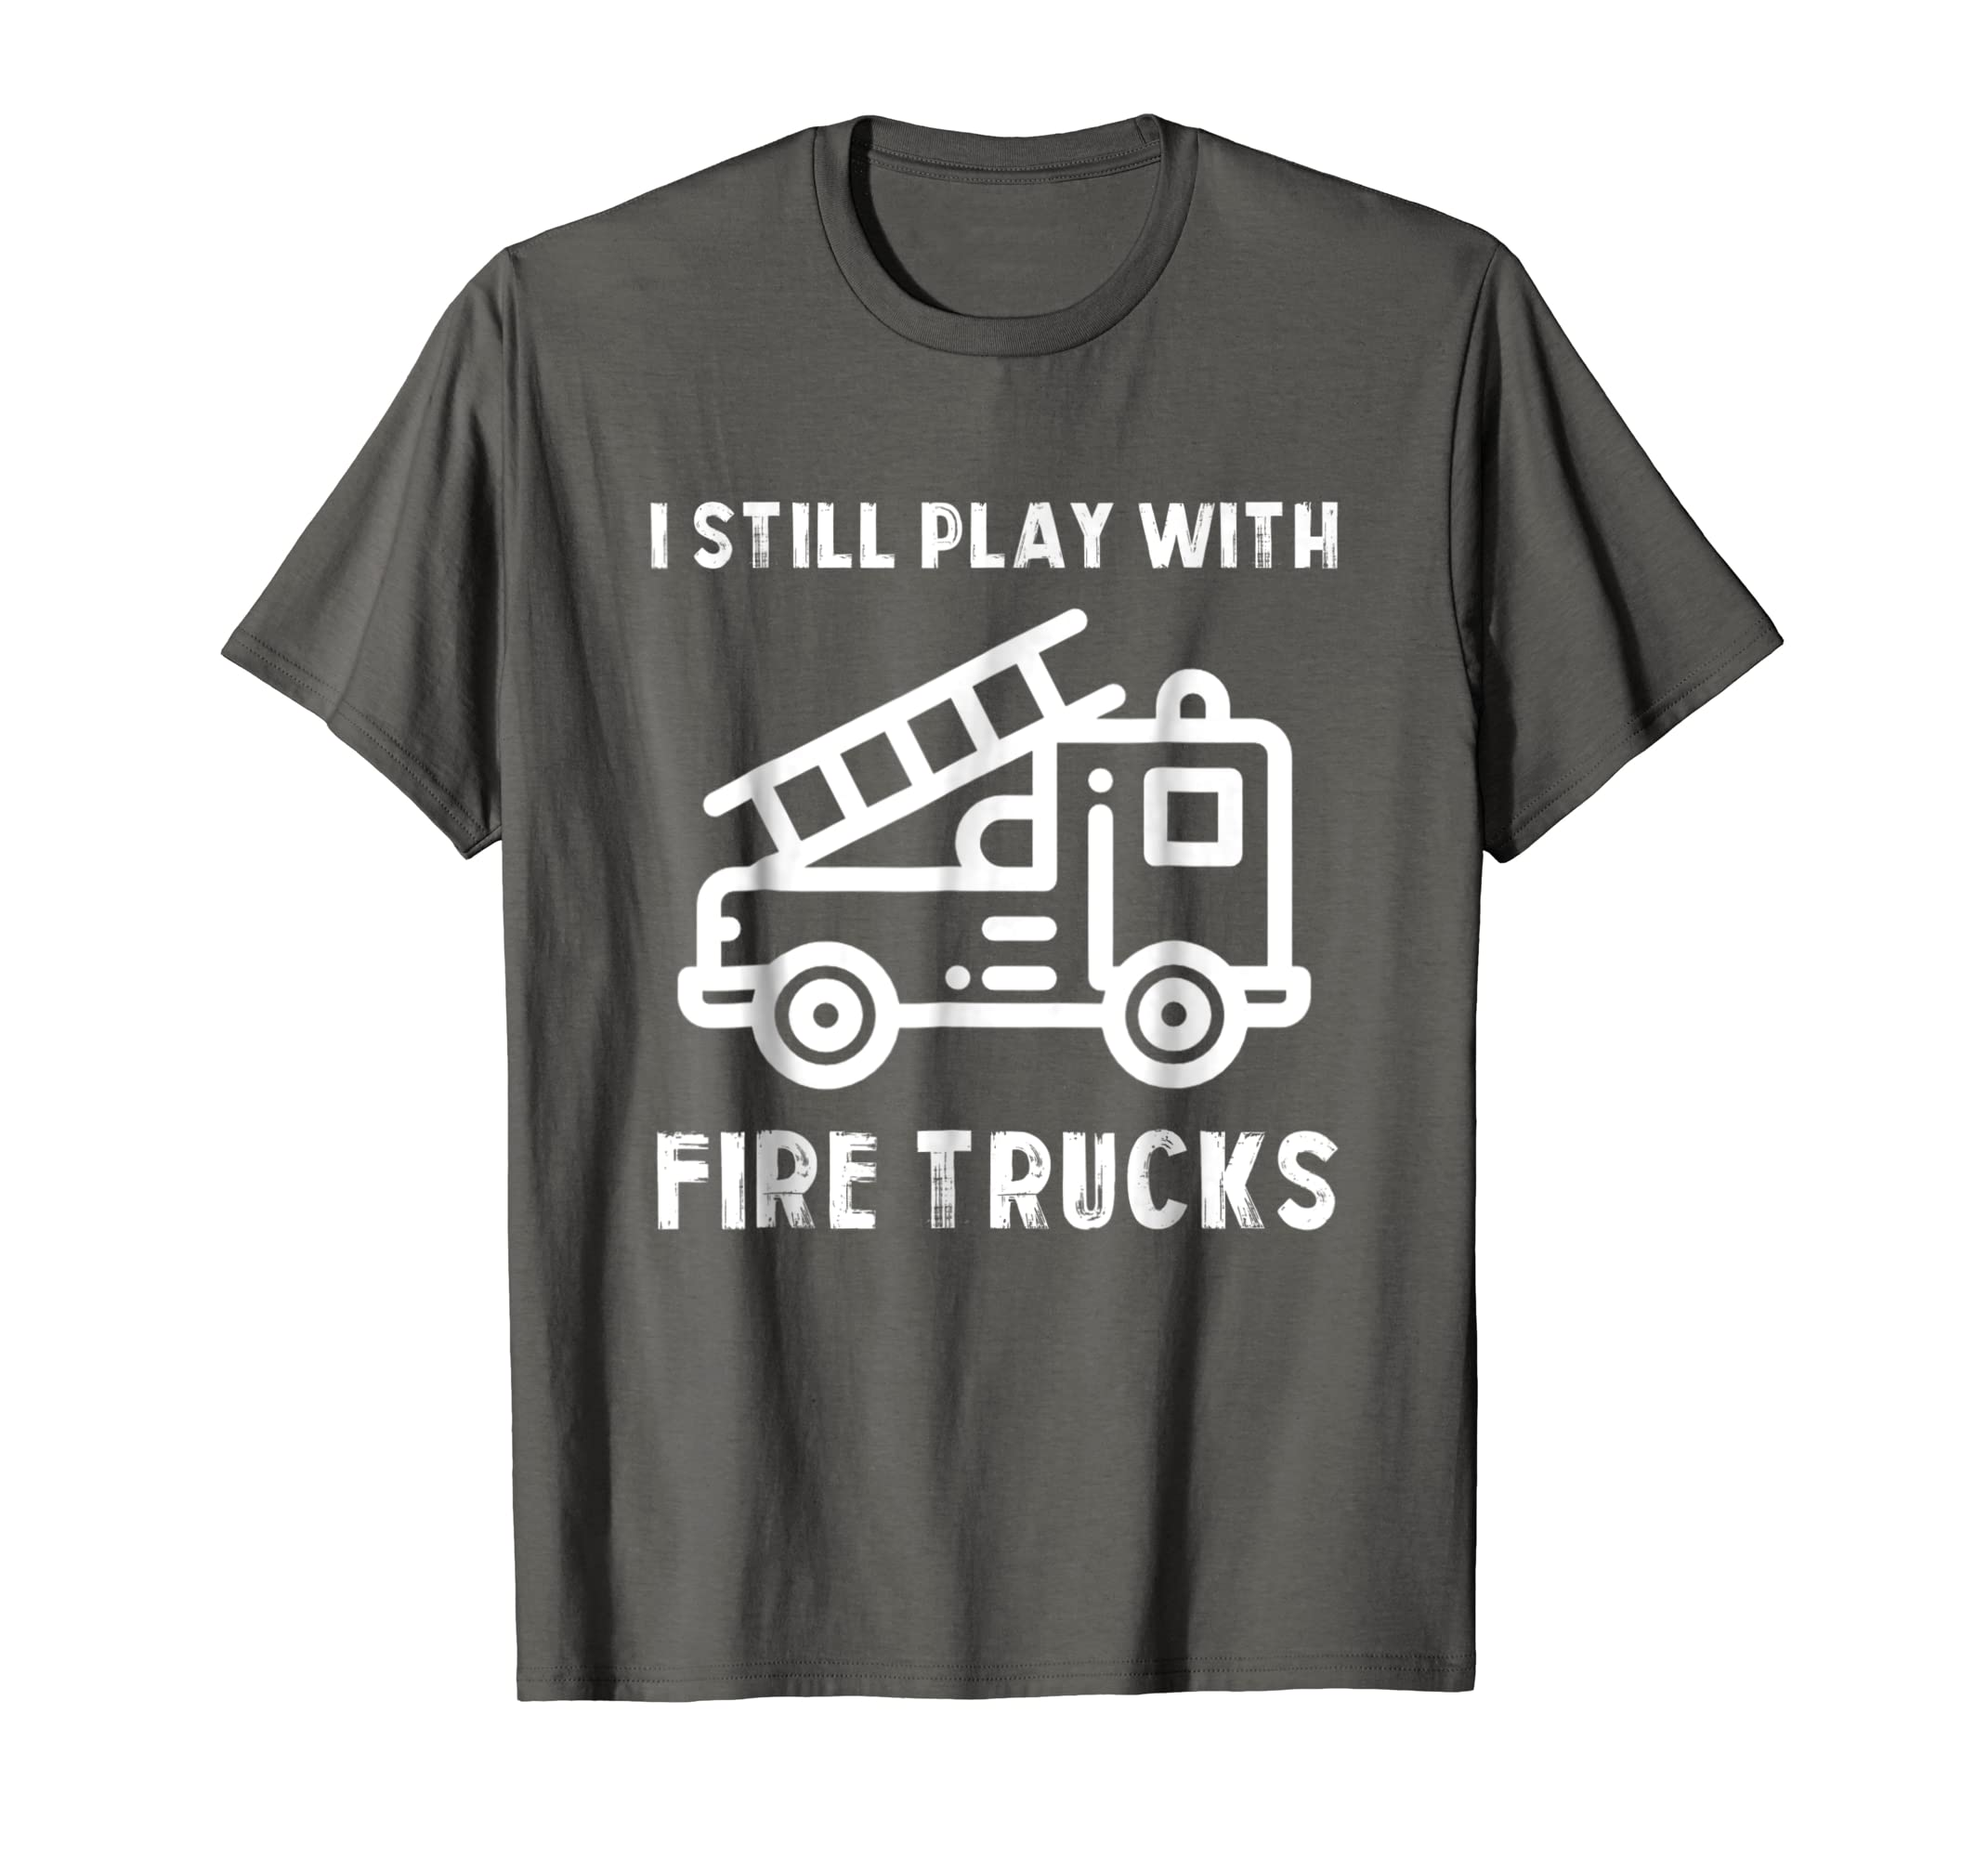 d446ce68b8 Amazon.com: Funny Firefighters T-Shirt   Firefighter Gift For Firemen:  Clothing